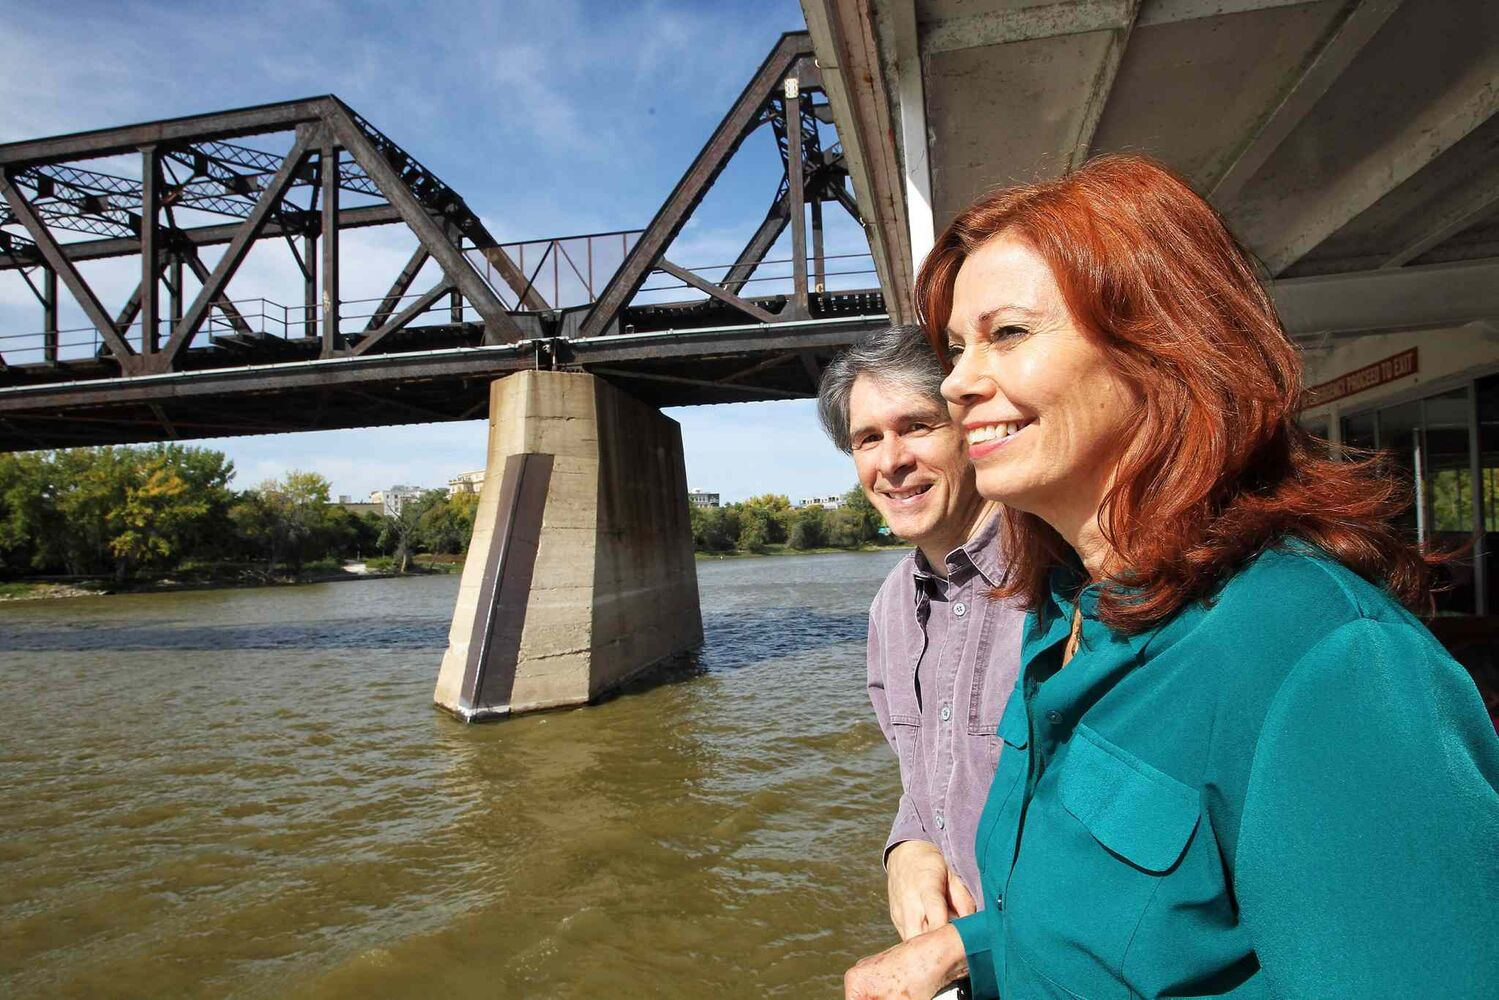 Brian and Nancy Drews, on seventh wedding anniversary, watch Winnipeg's skyline as the Paddlewheel Queen cruised the Red River for the last time this year. The couple had their wedding reception on the Paddlewheel Queen seven years ago.  (Mike Deal / Winnipeg Free Press)